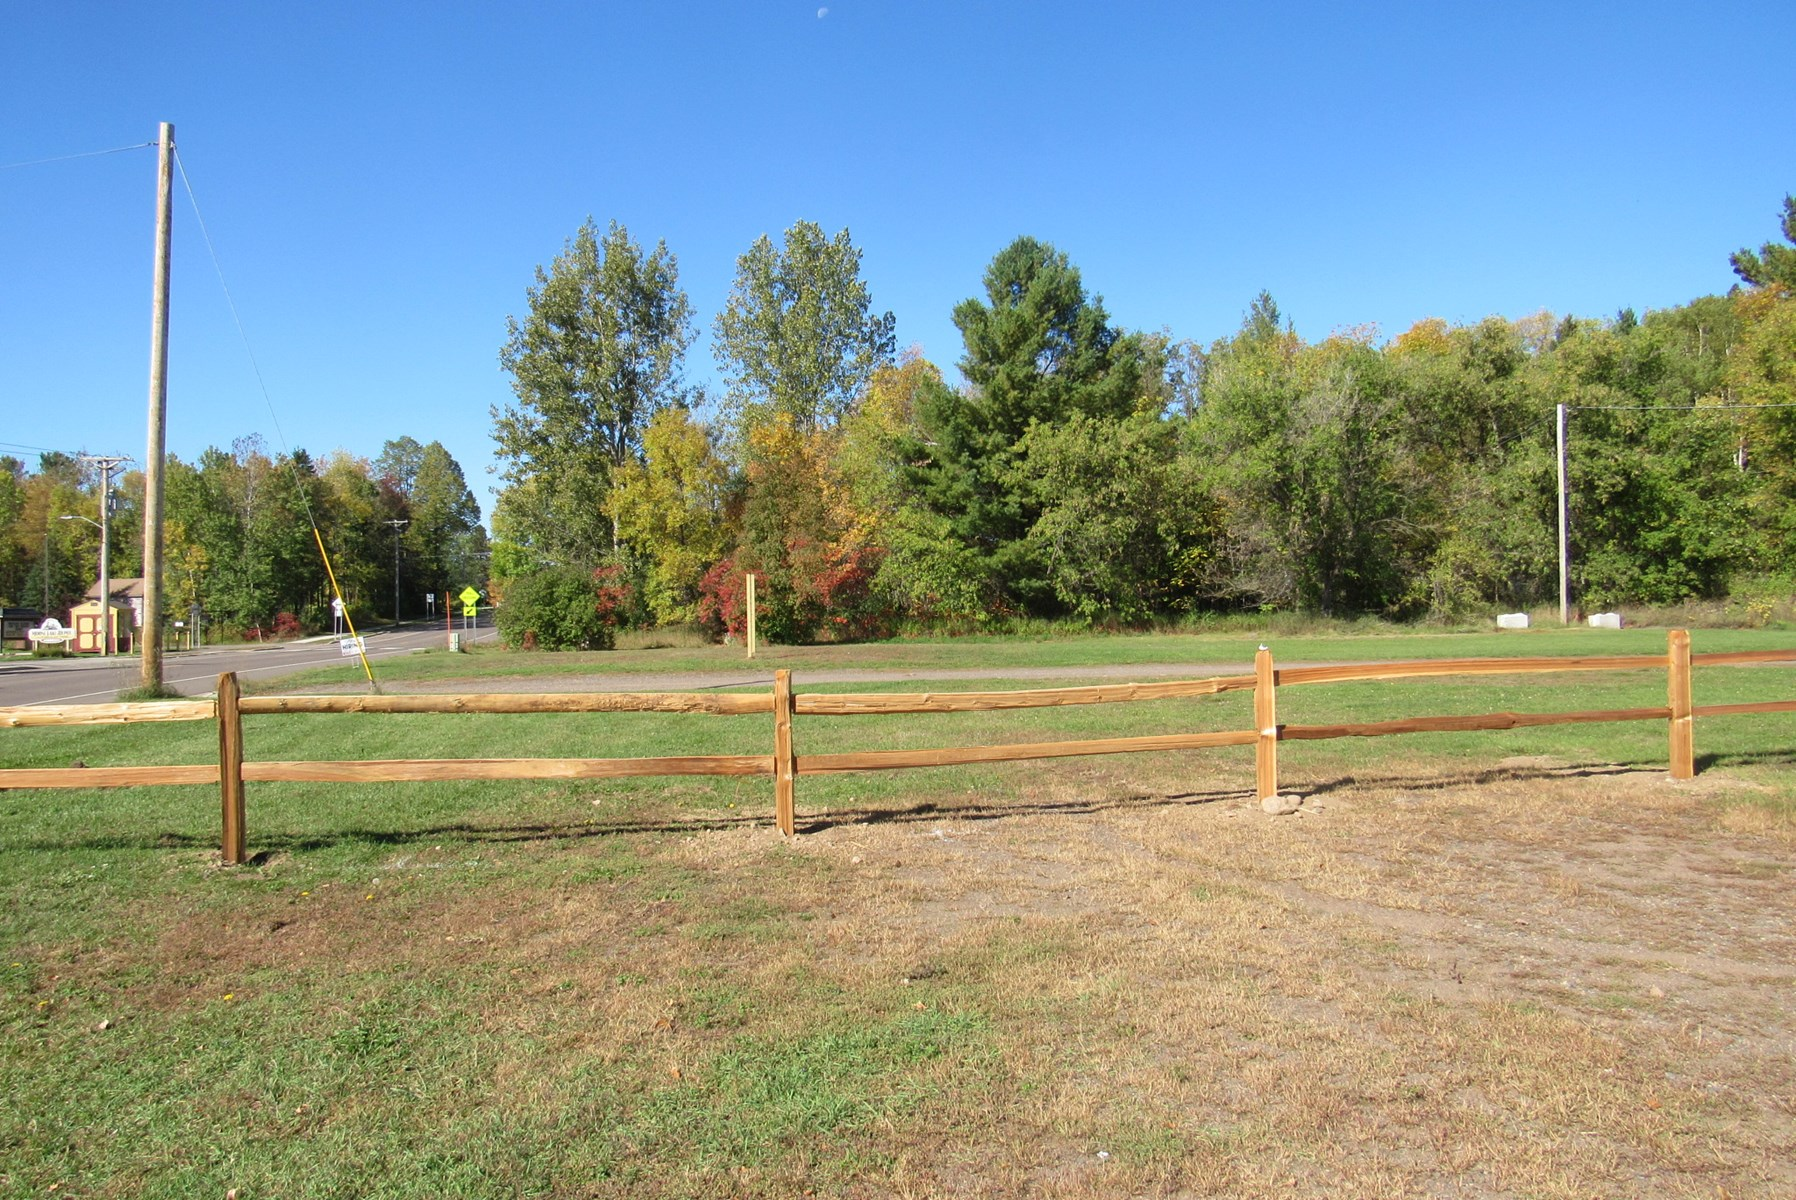 0.6 Acre In-Town Lot of Land For Sale in Moose Lake MM